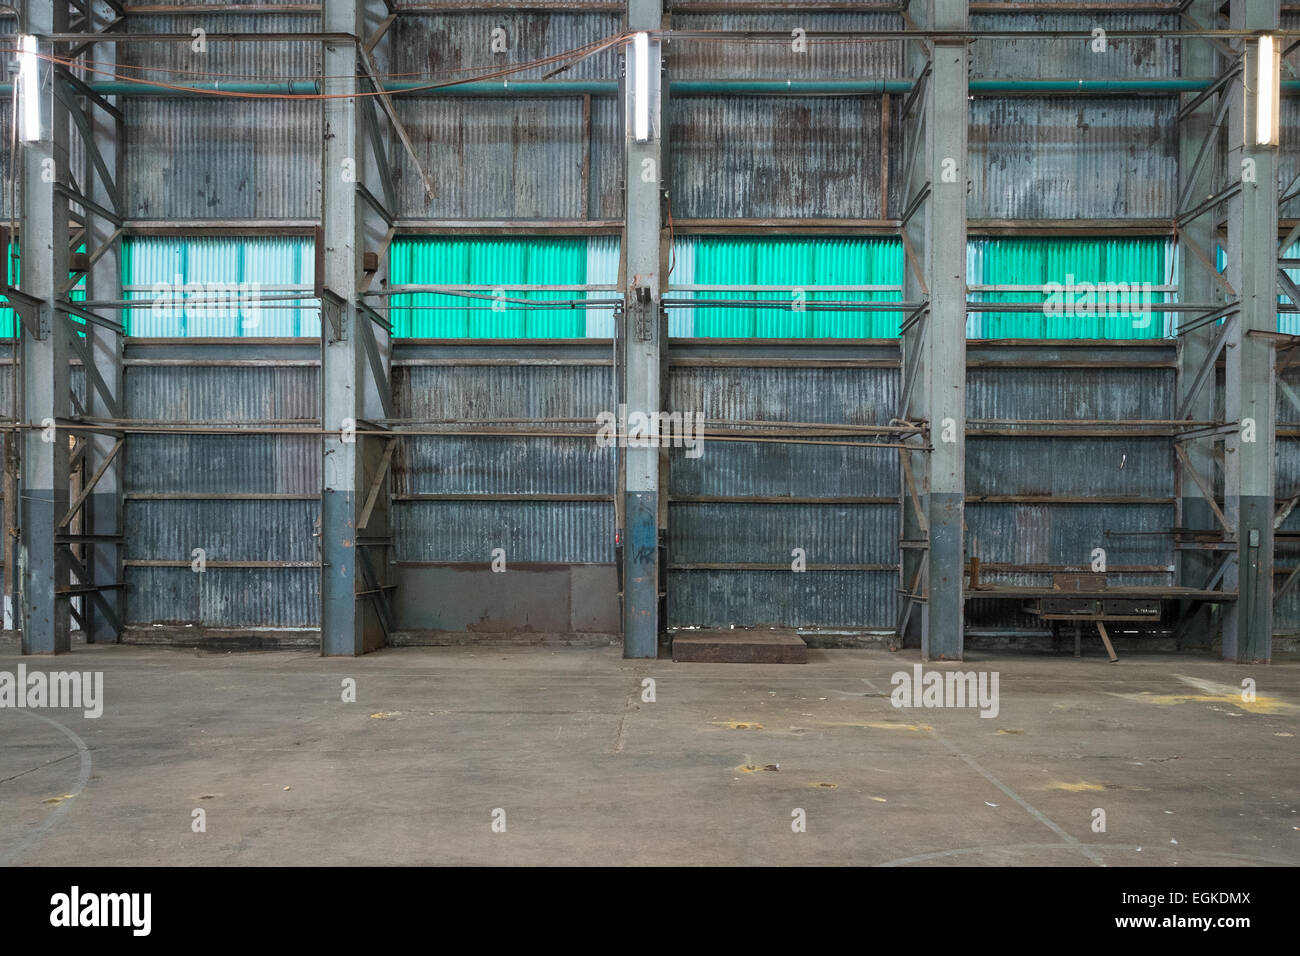 Corrugated iron wall in a warehouse. - Stock Image